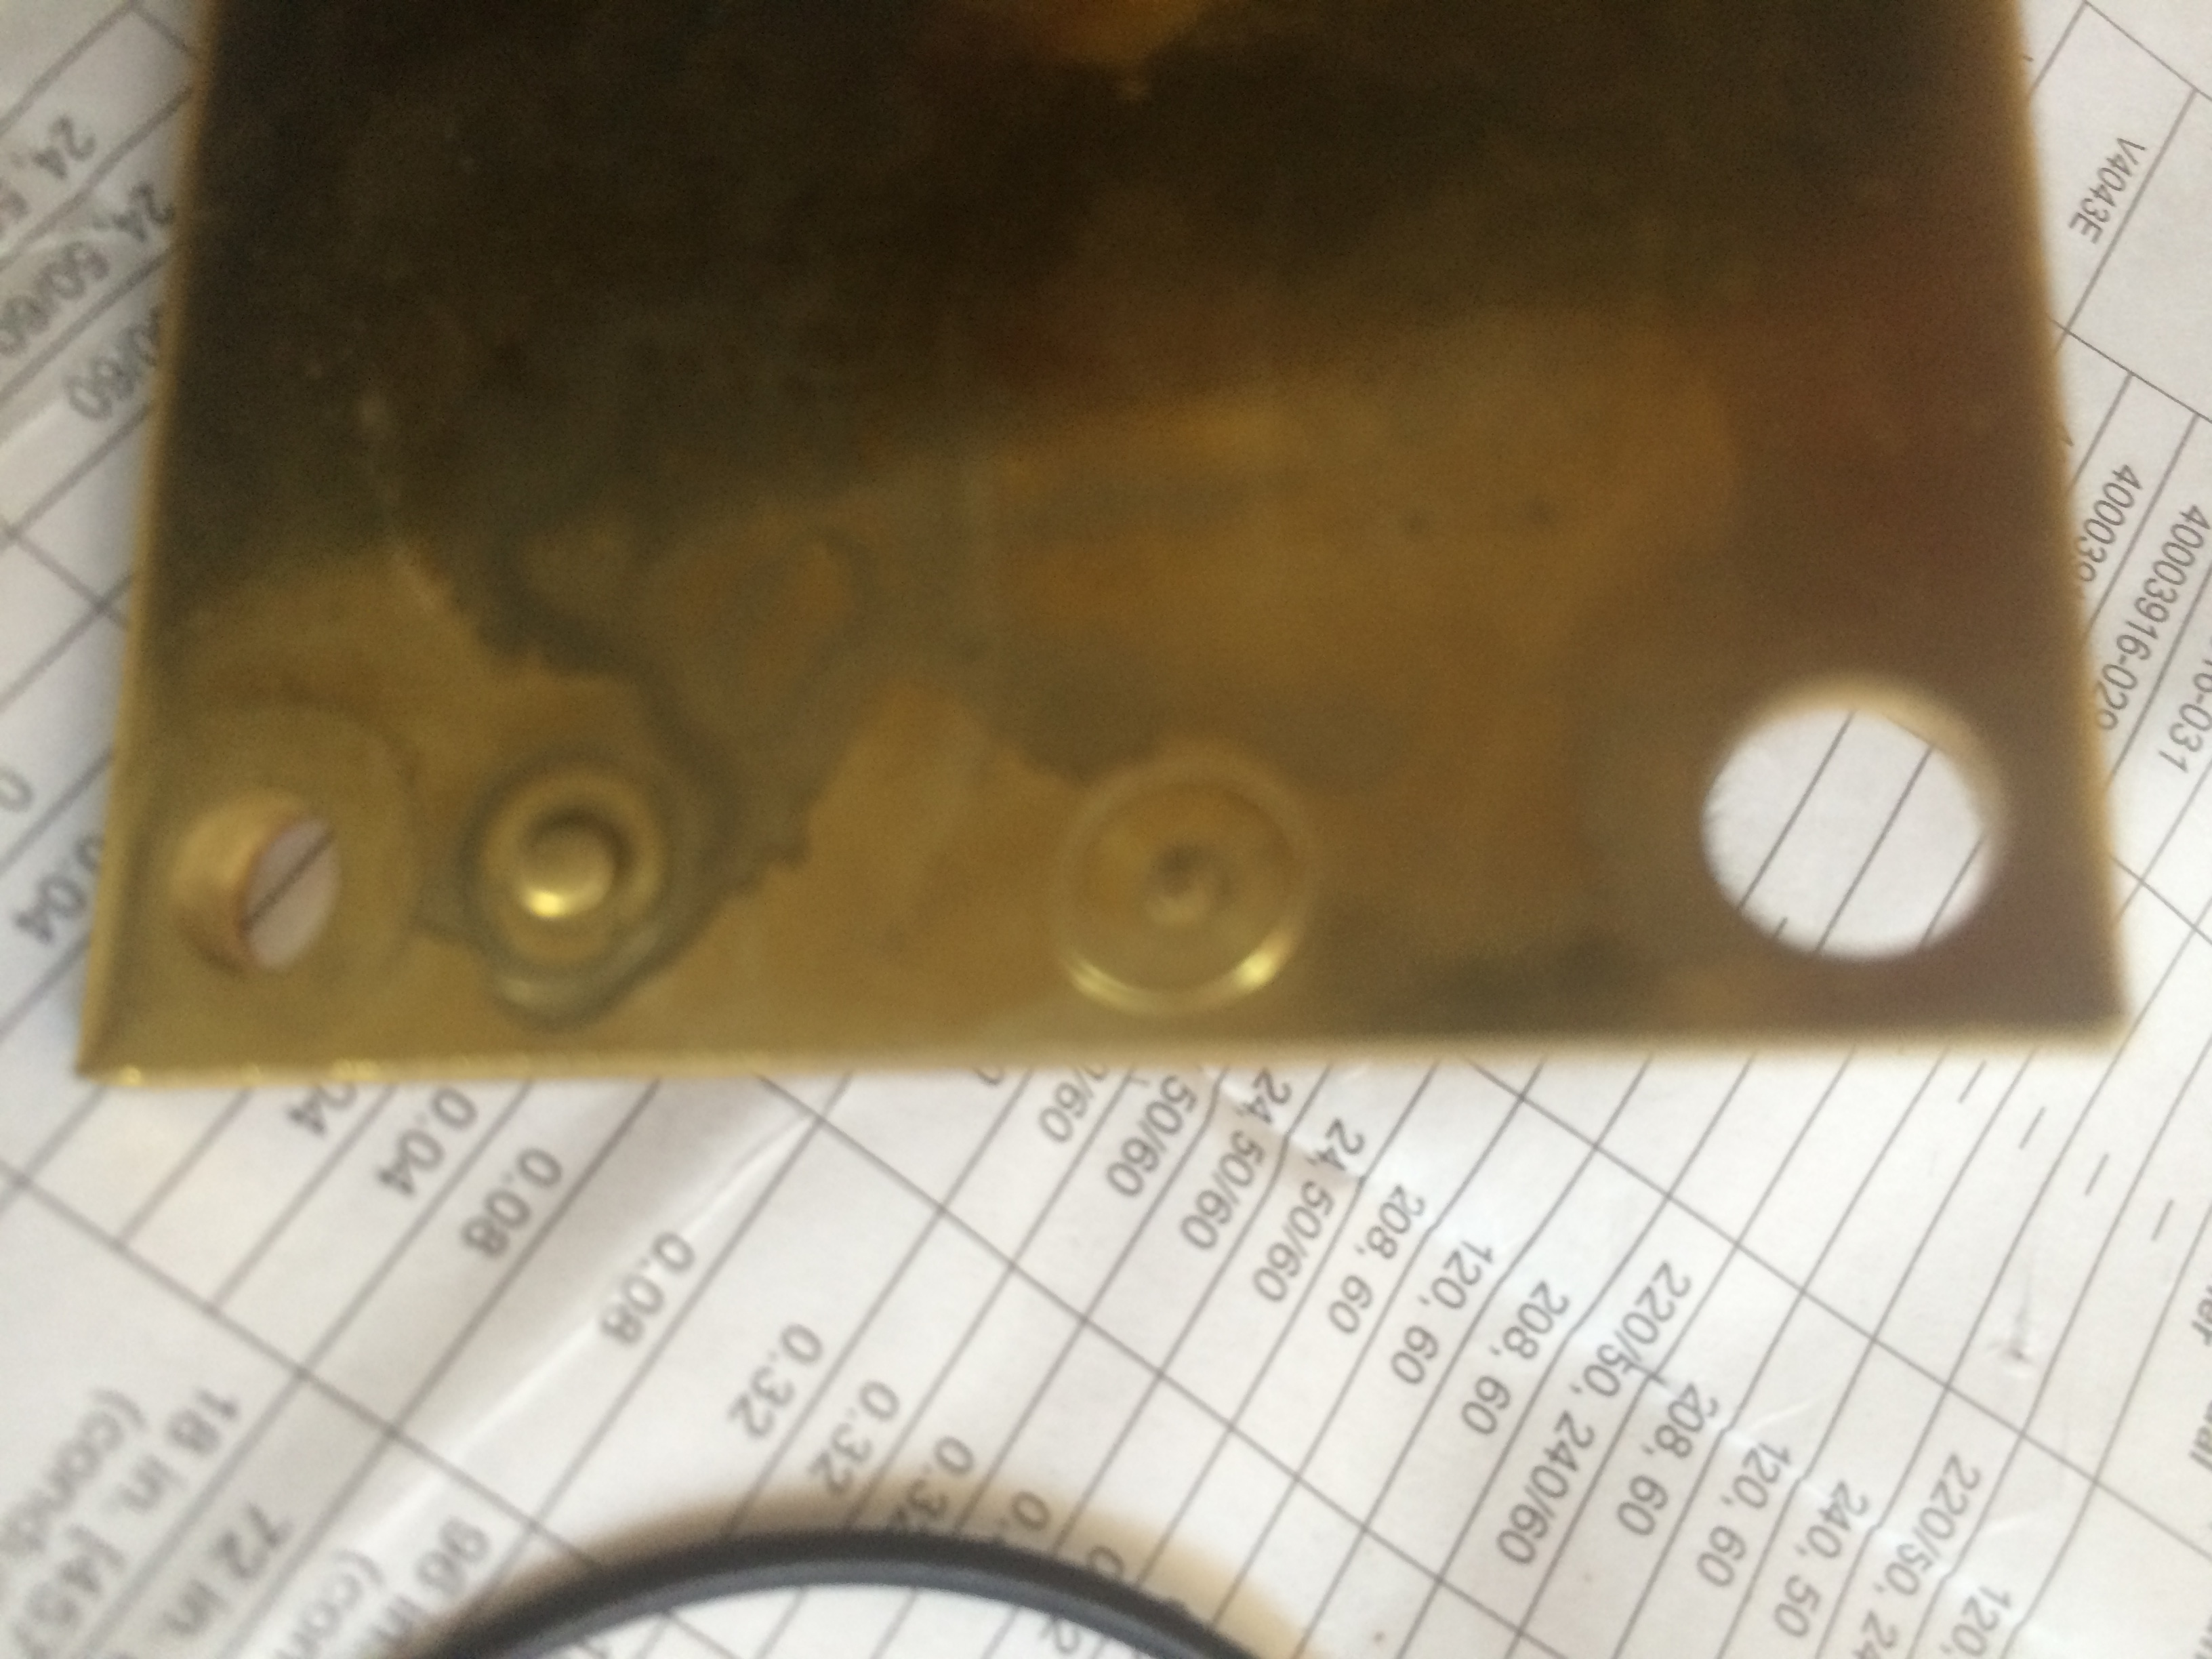 Rebuilt Honeywell Zone Valves Twinsprings Research Institute Valve 40004850 001 Indents To Position The Plate